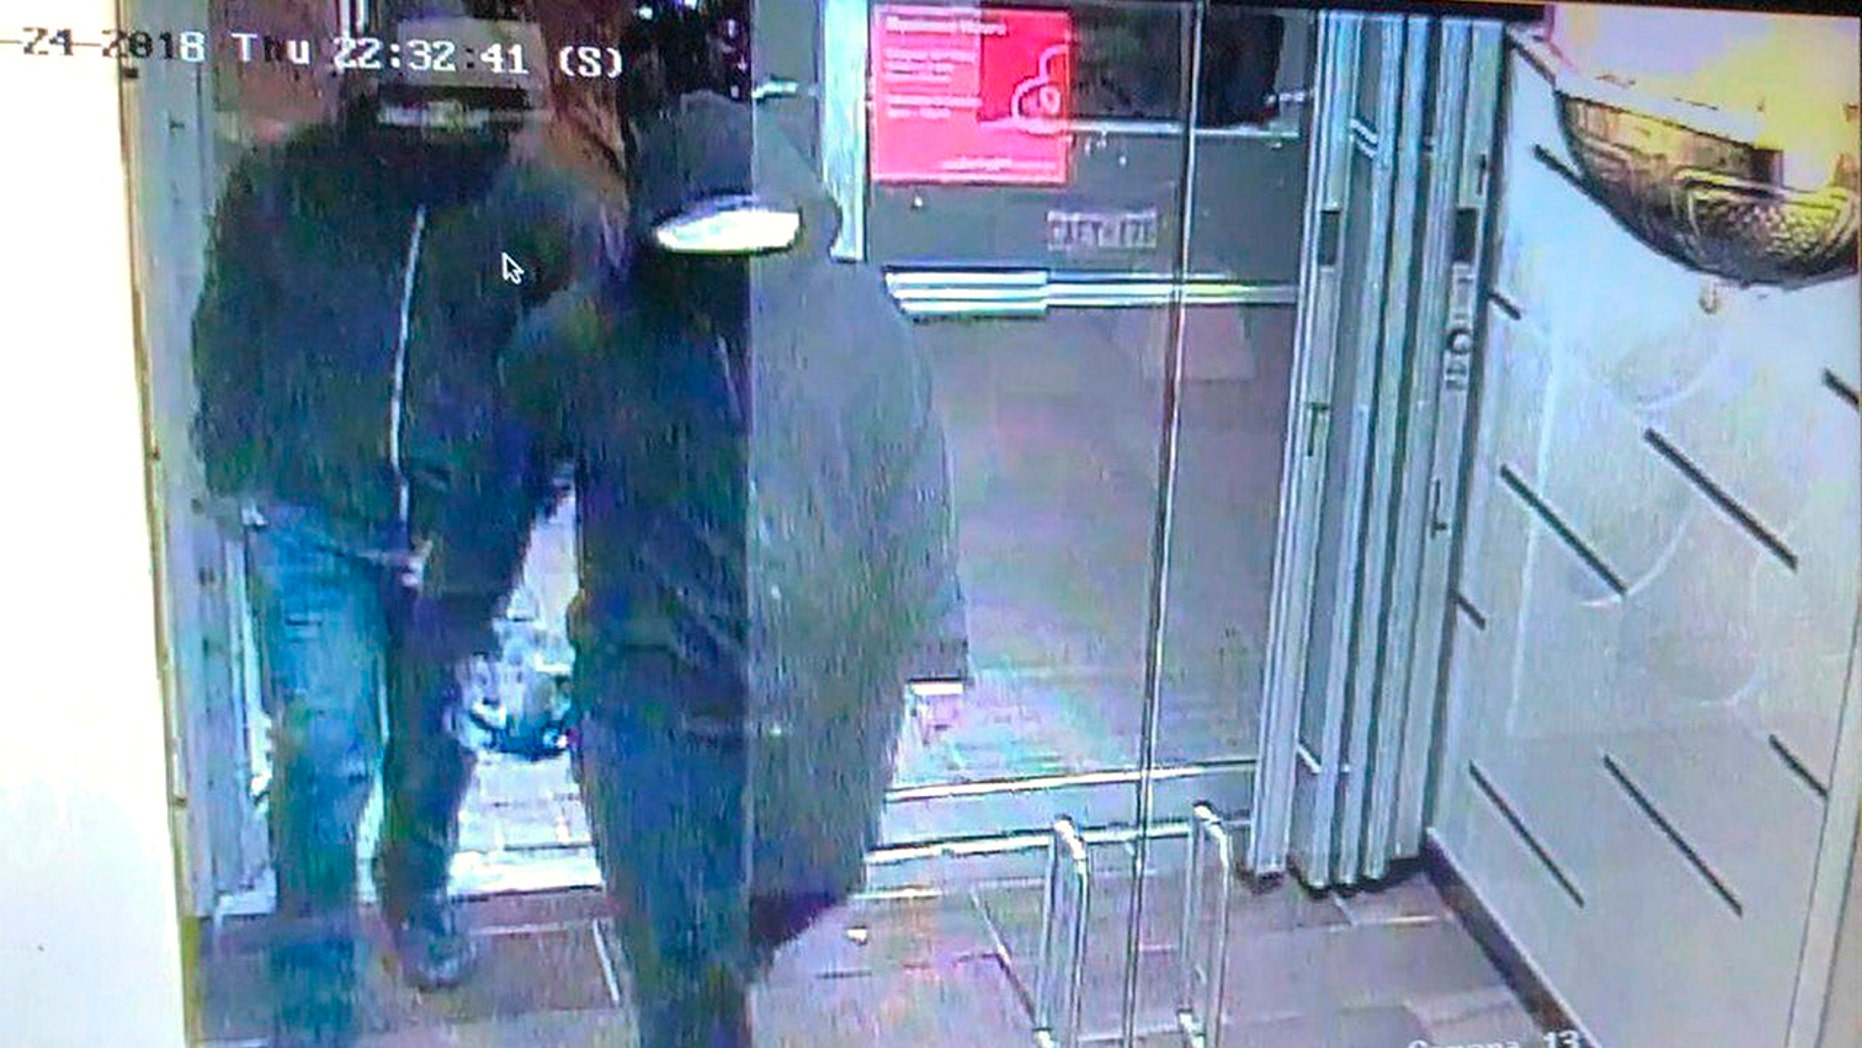 """In this image made from CCTV footage released by Peel Regional Police, two suspects enter a glass doorway of the Bombay Bhel Indian restaurant, late Thursday, May 24, 2018, in Mississauga, suburb of Toronto, Canada. Police are searching for the two suspects in connection with the explosion caused by """"improvised explosive device"""" that ripped through the restaurant, wounding 15 people, Canadian police said."""